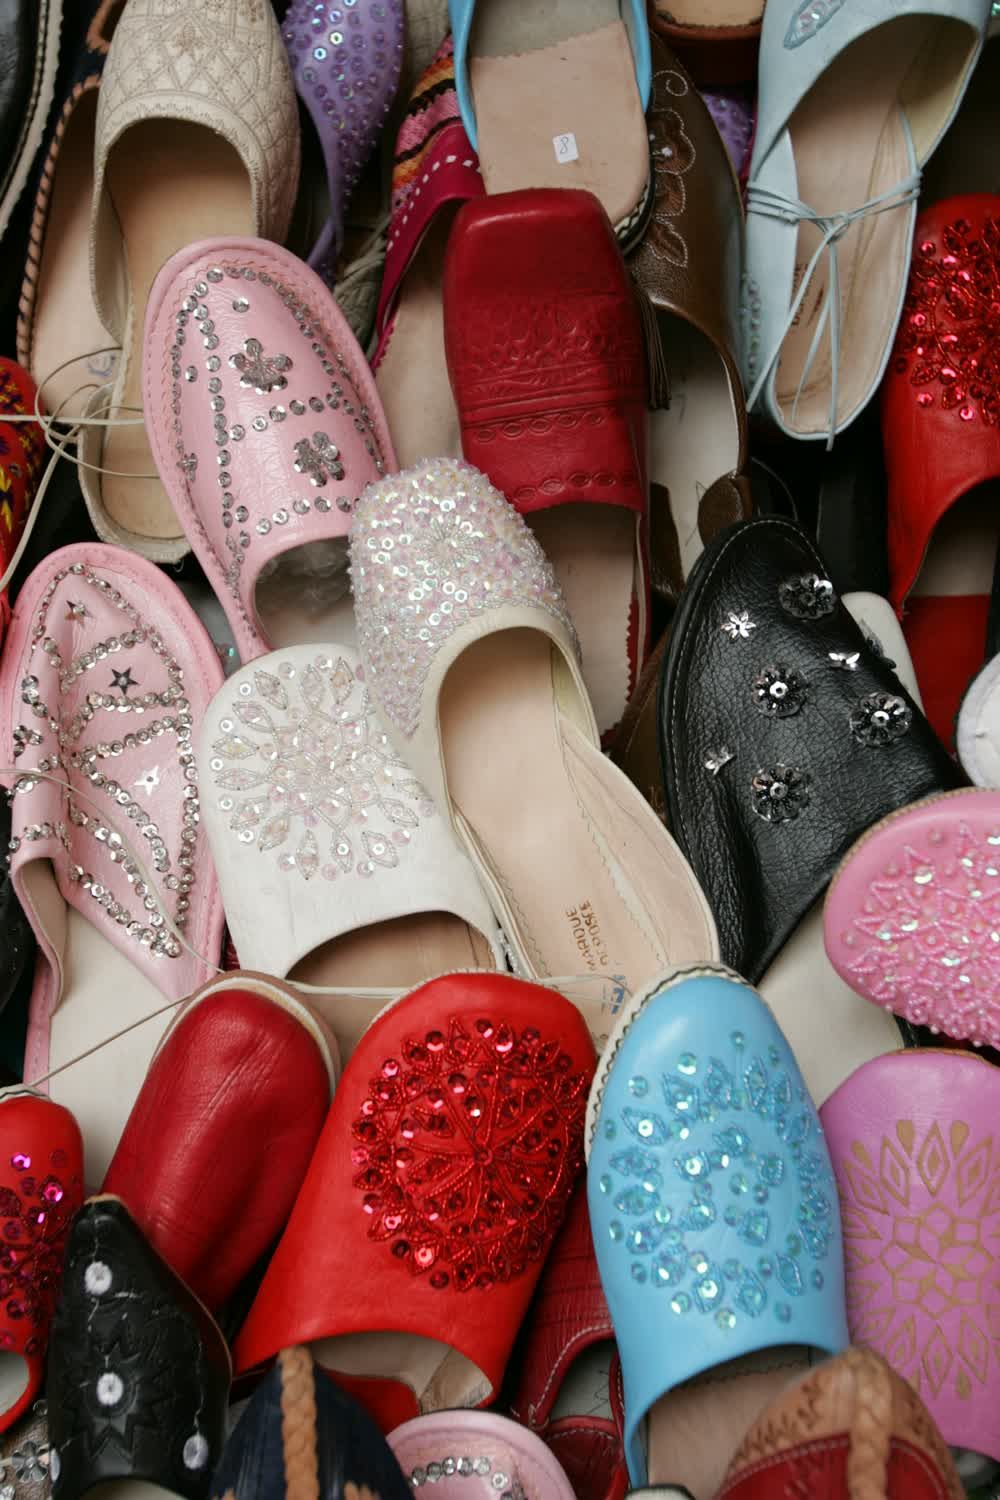 title: Traditional Slippers with Jewels and Studs in the Souks